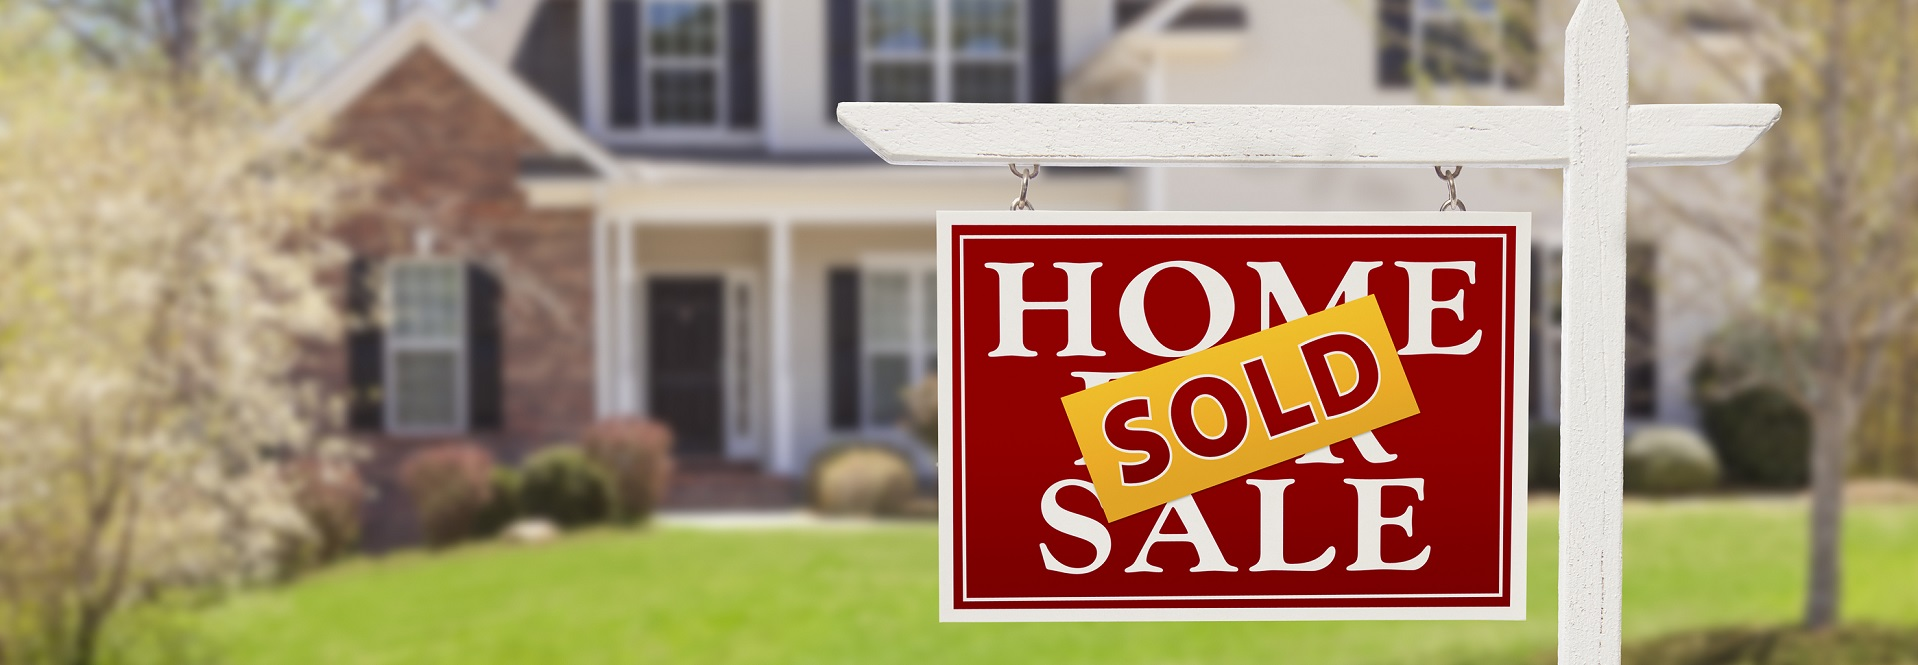 sell your home in Glendale/Maspeth/Middle Village/Ridgewood/Woodside